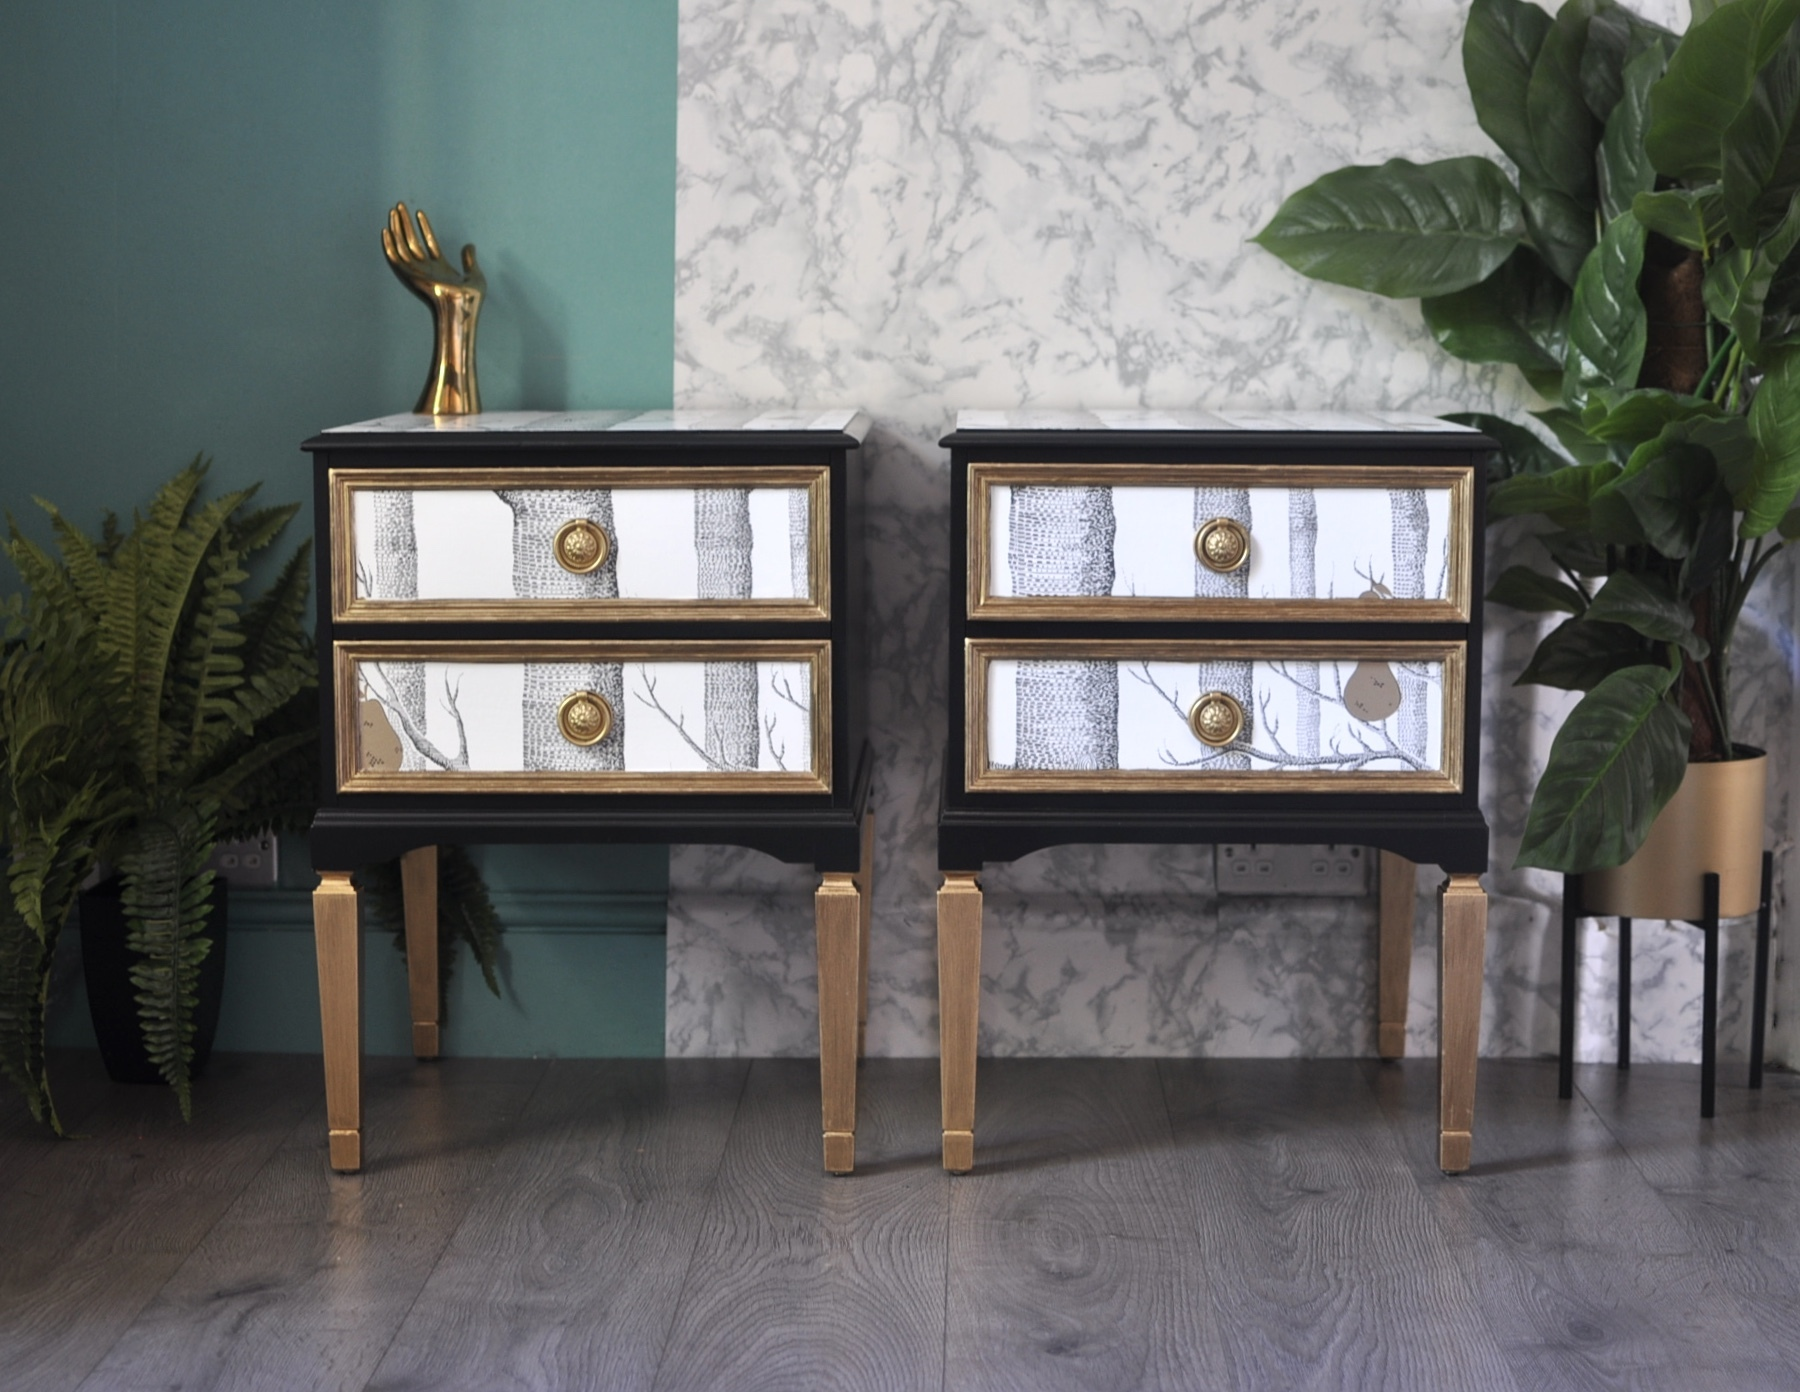 pair-of-upcycled-vintage-wooden-side-tables-retro-bedside-cabinets-cole-and-sons-woods-and-pears-decoupage.jpg